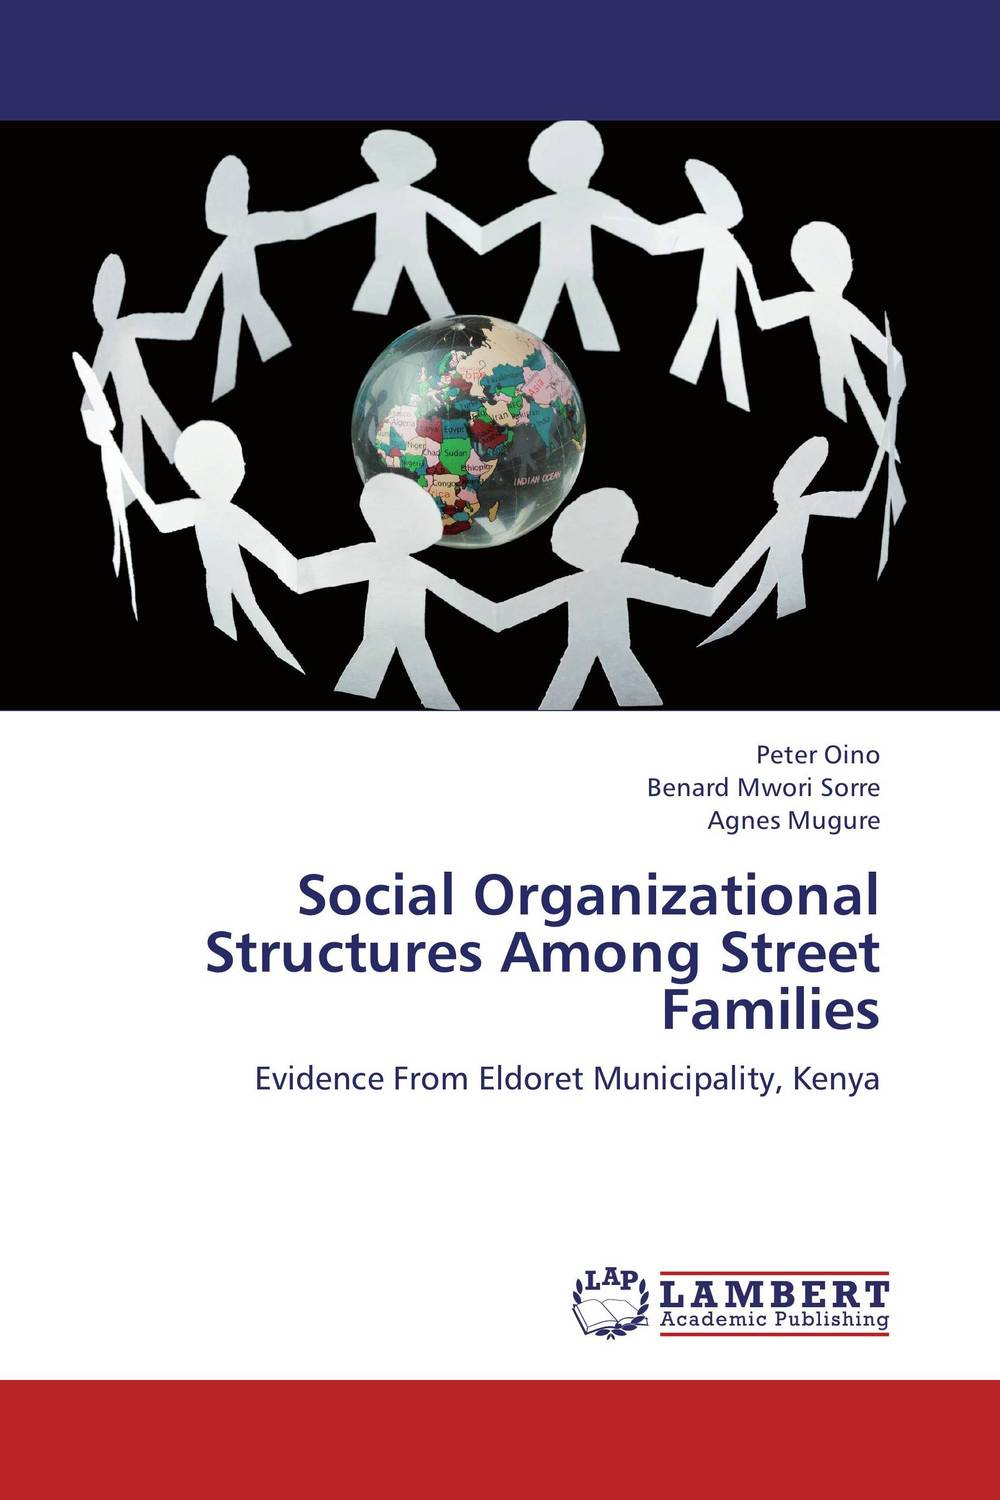 Social Organizational Structures Among Street Families florence kisirkoi learning needs of street children in kenya